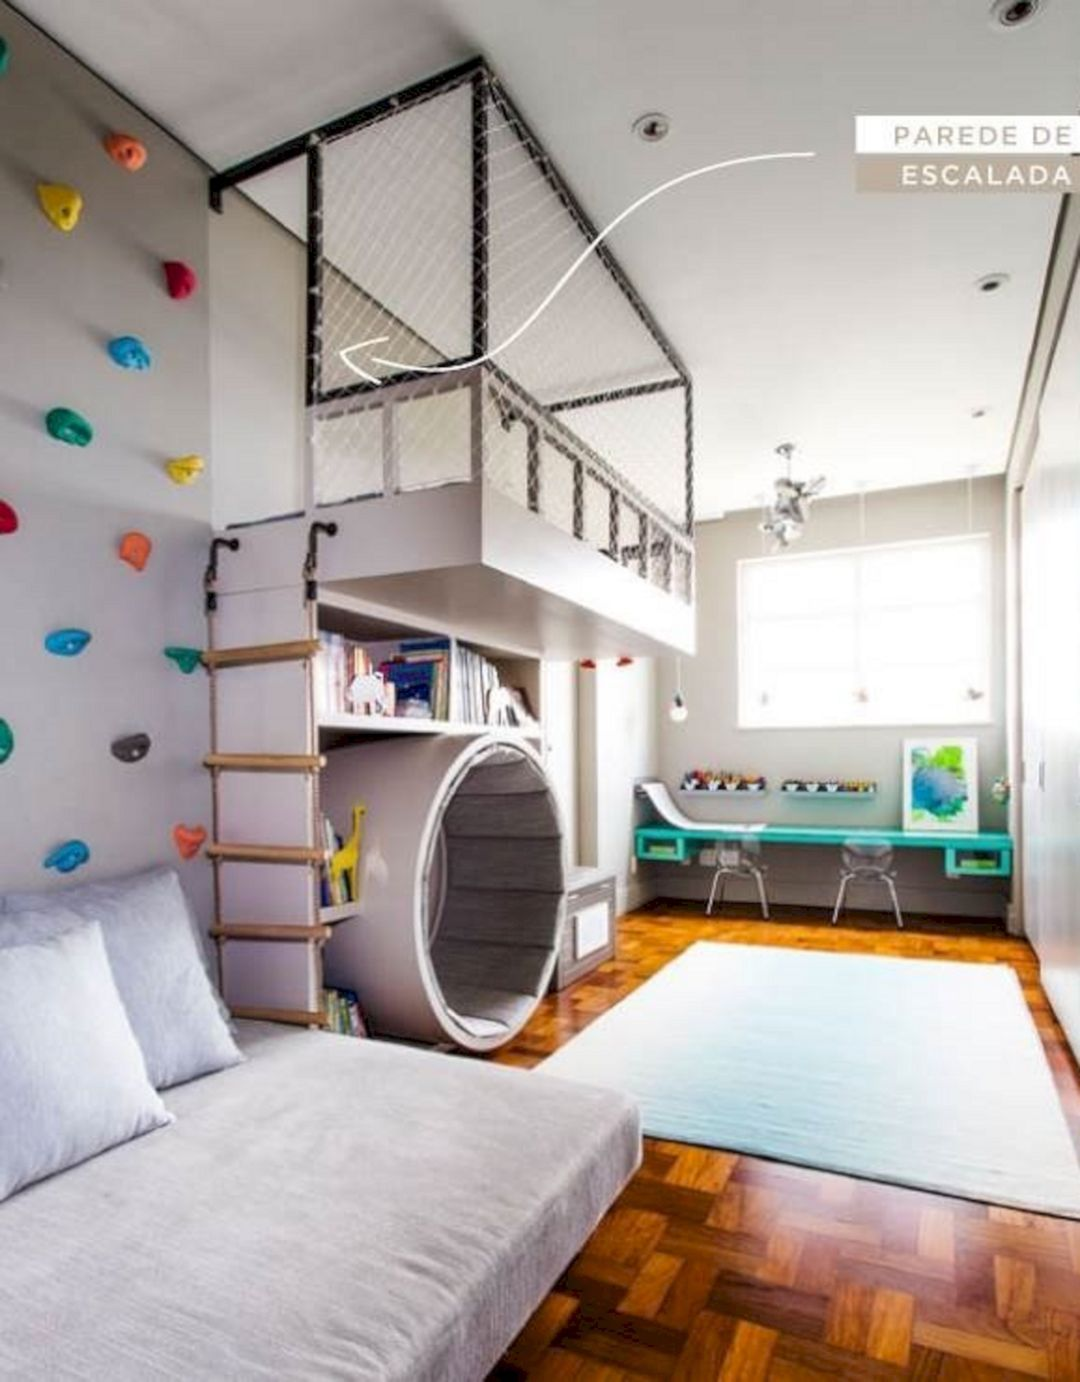 Marvelous 55 Best Ideas Fun Kid Play Room Design That You Must Have In Your Home Http Goodsgn Com Design Decorating 55 Be Awesome Bedrooms Dream Rooms Home